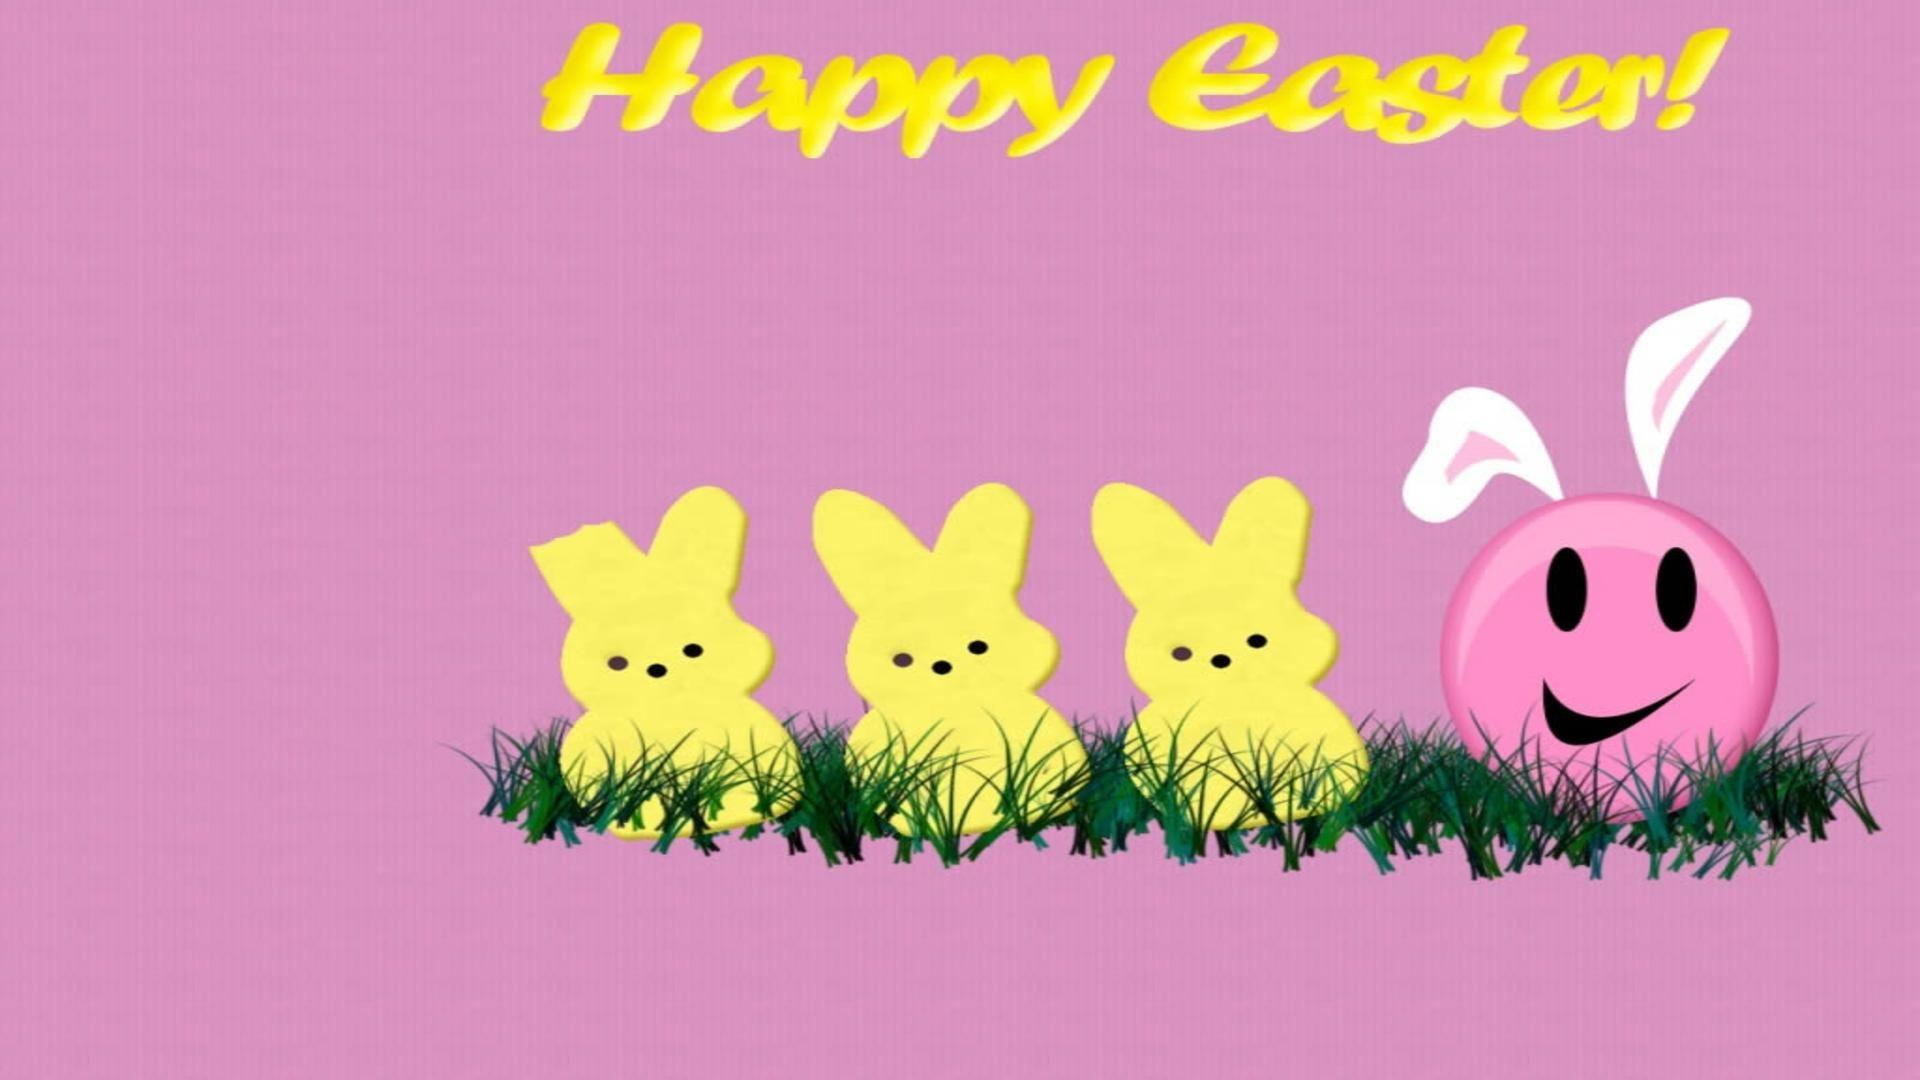 Free Easter Desktop Backgrounds